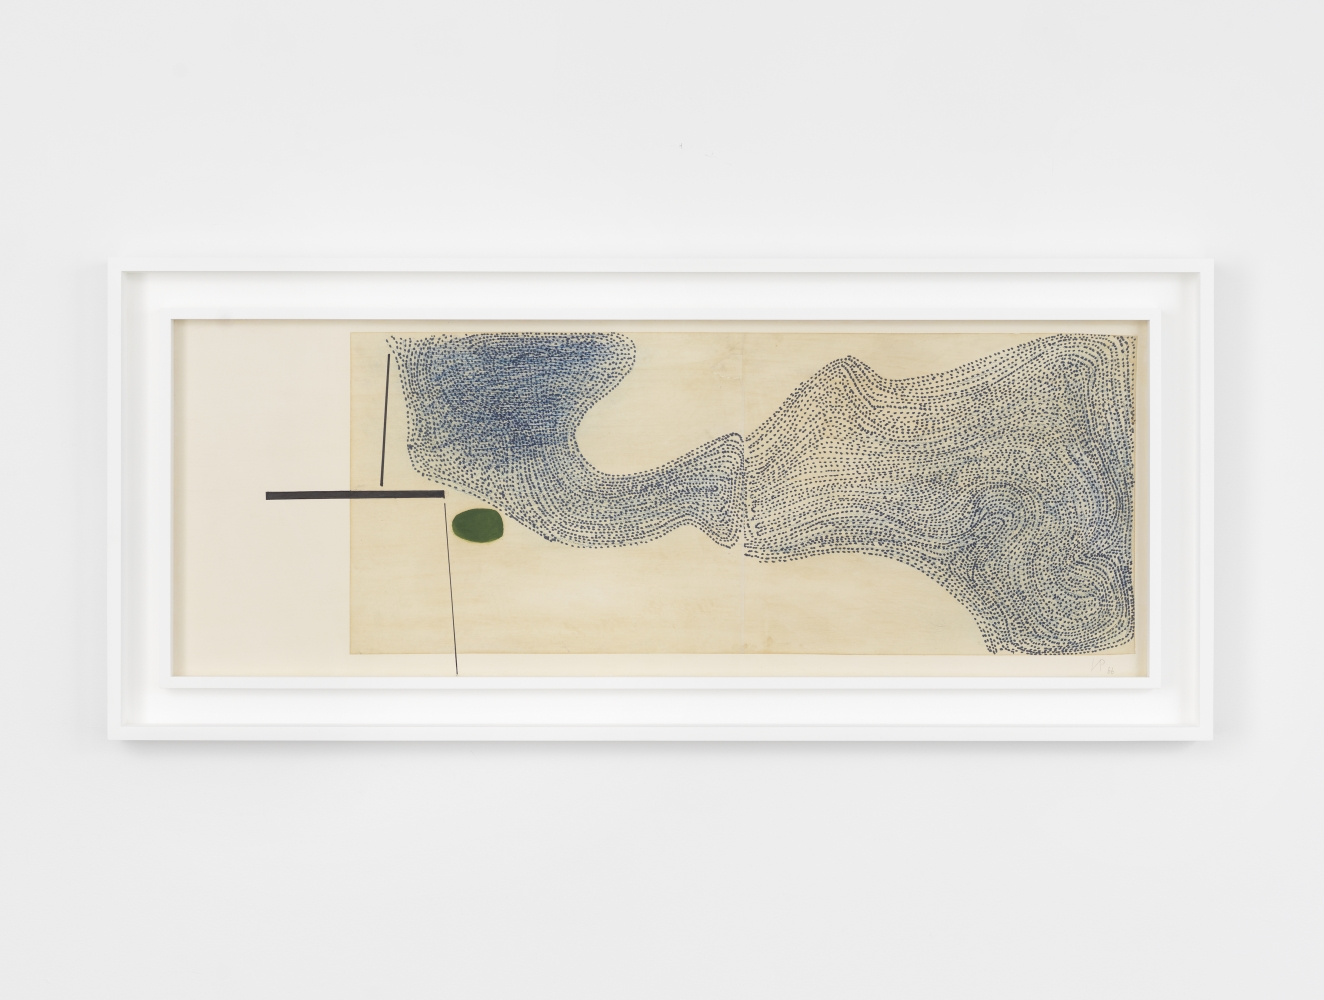 Framed oil and paper on canvas abstract work by Victor Pasmore featuring a large blue stippled segment near a large point and black lines